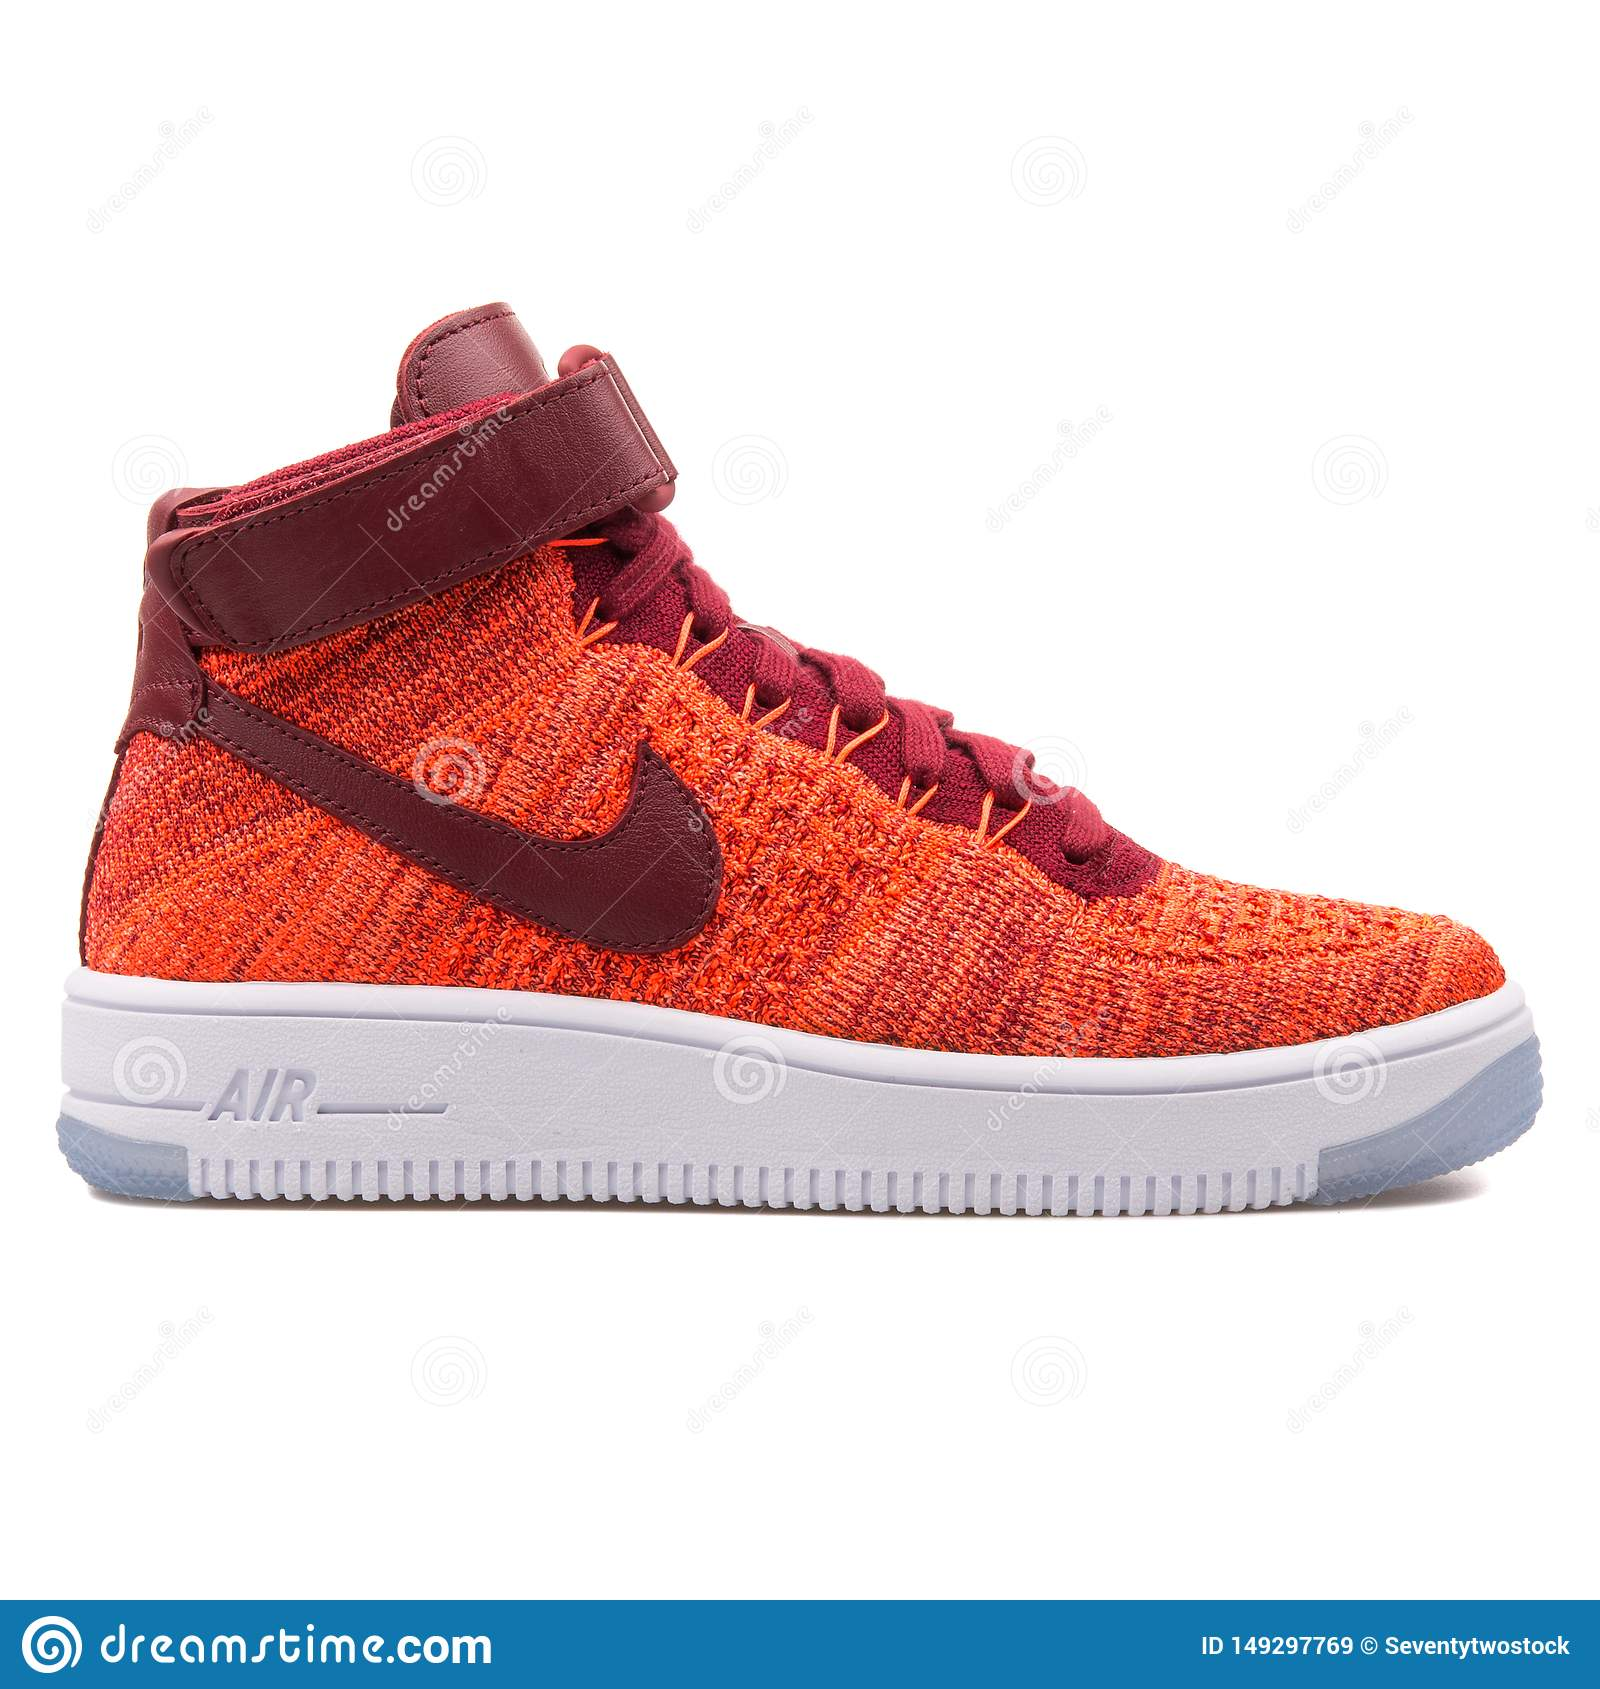 64cf5a76 Nike Air Force 1 Flyknit Red Sneaker Editorial Stock Image - Image ...